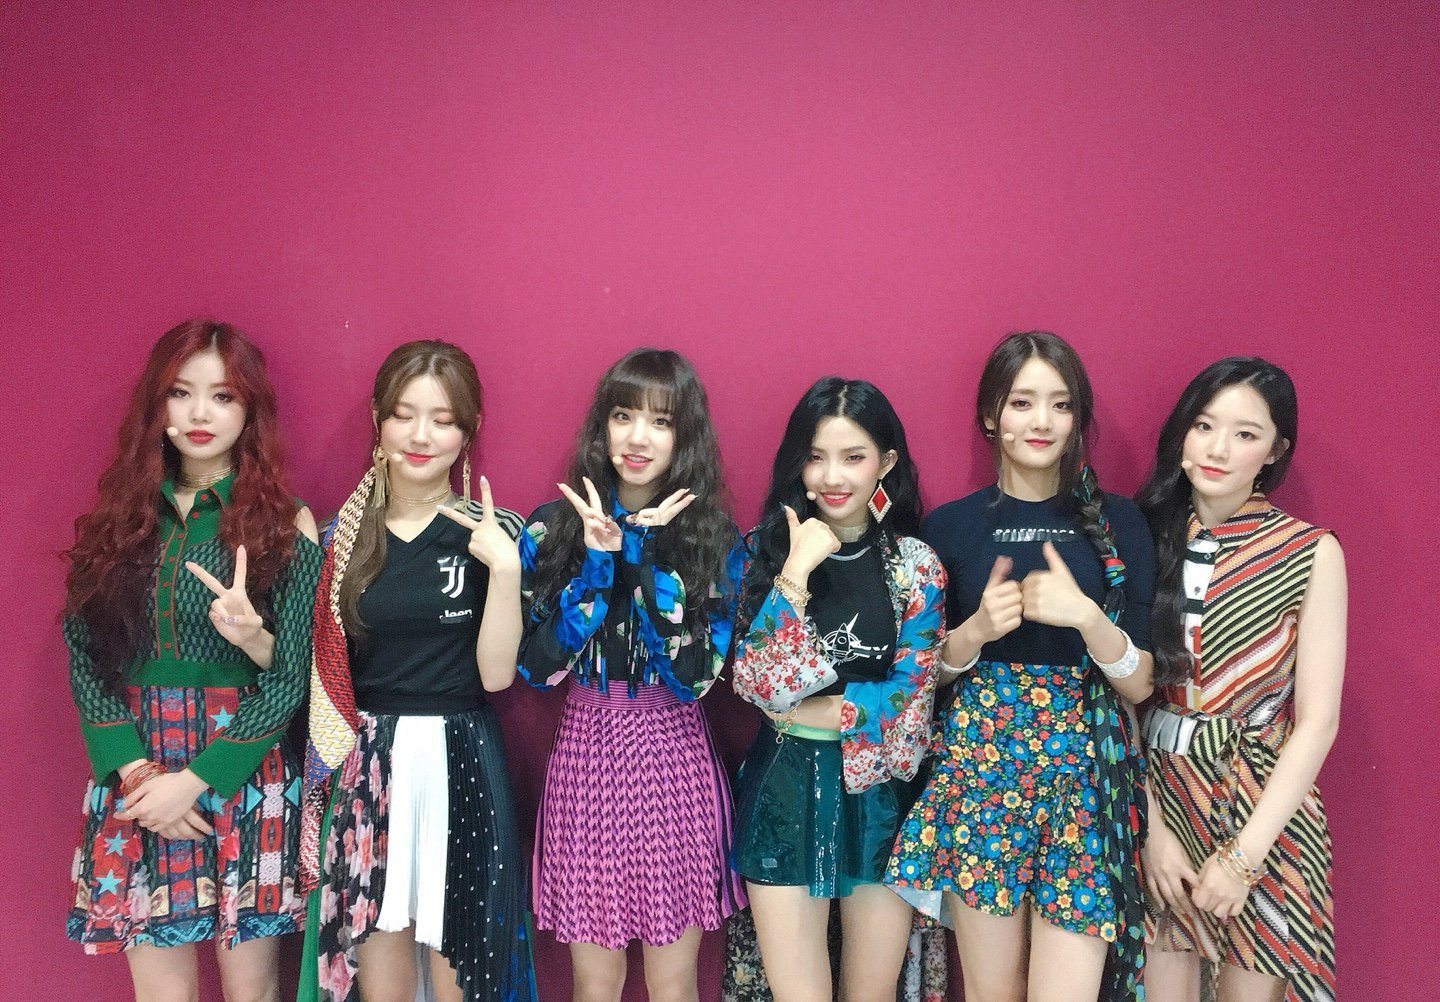 G_I_DLE